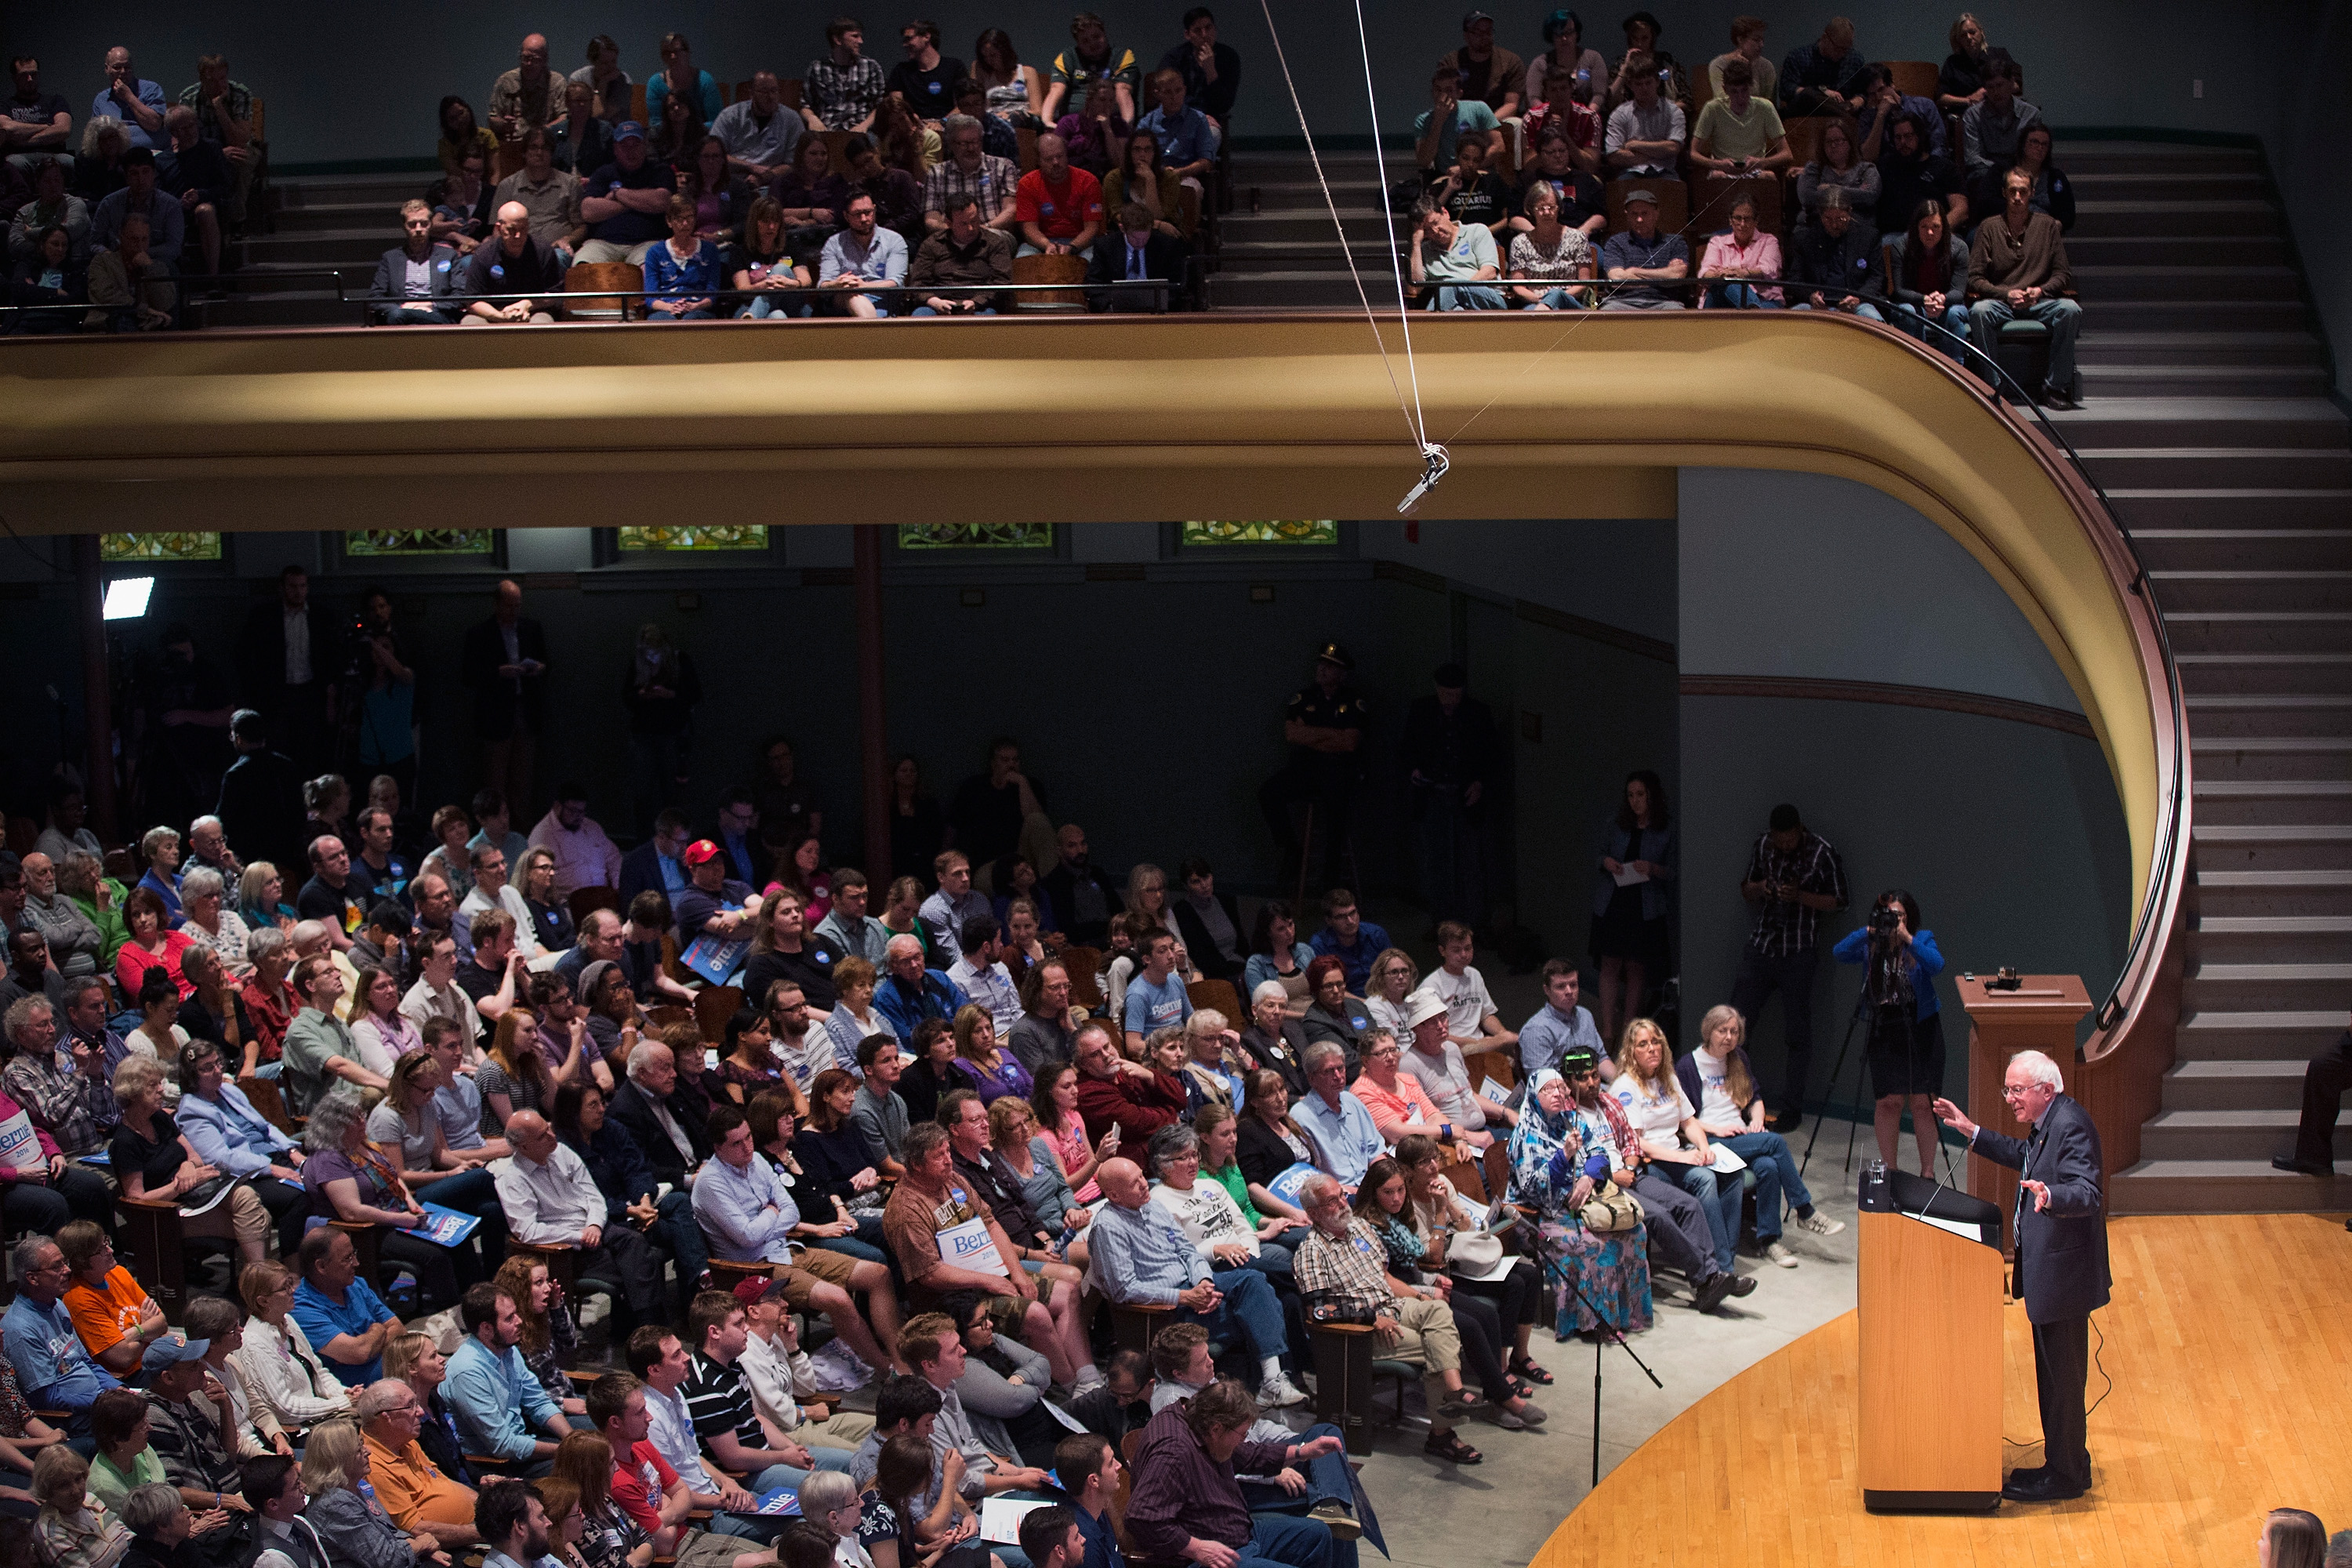 Senator Bernie Sanders (D-VT) speaks at a campaign event at Drake University on June 12, 2015 in Des Moines, Iowa. Sanders, an advocate of providing free college education to all Americans, was greeted by a standing-room-only crowd at the event.